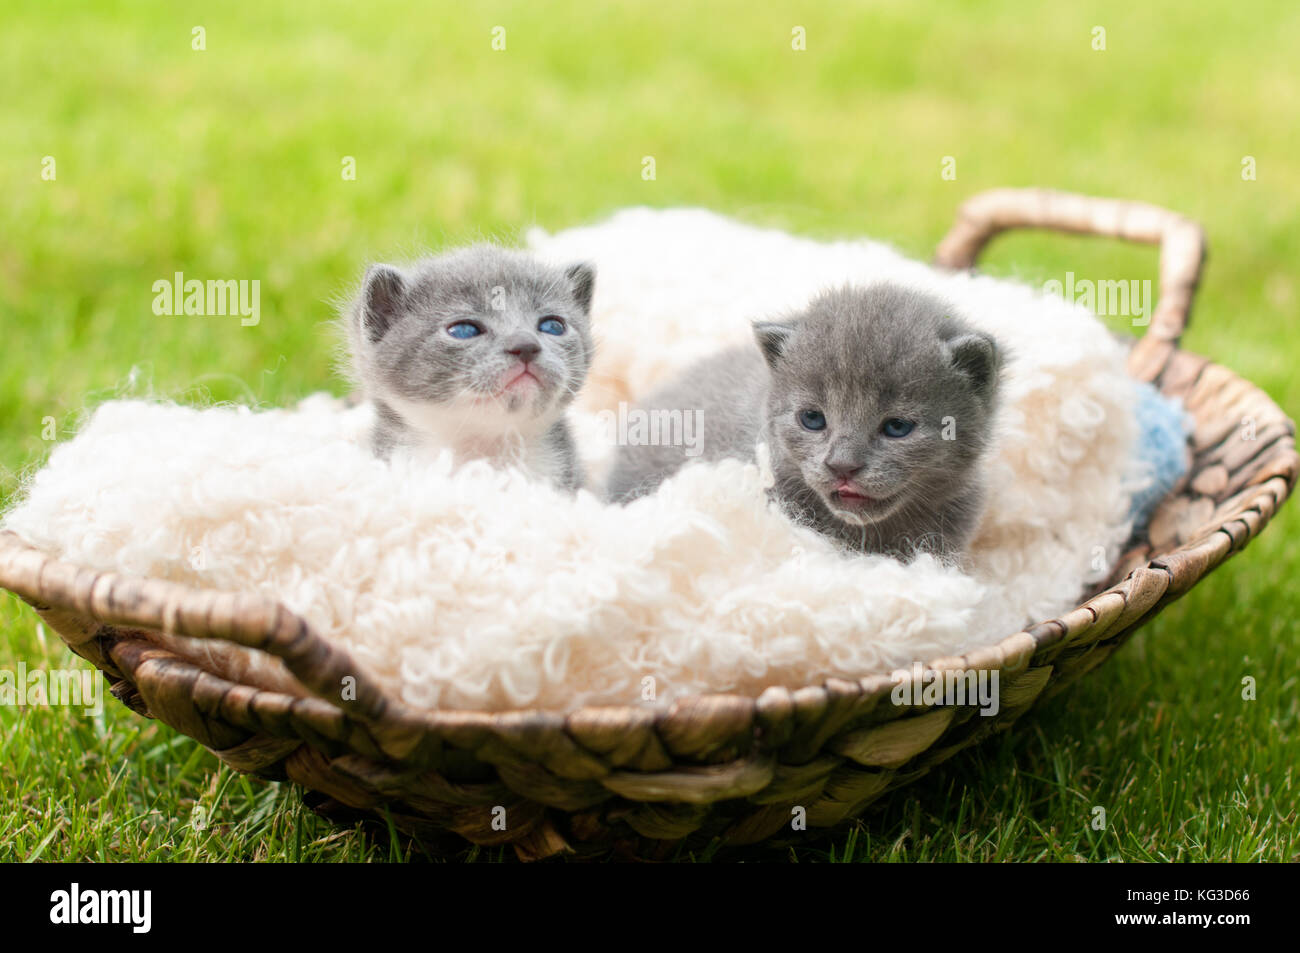 Two sweety kittens in old wooden basket - Stock Image